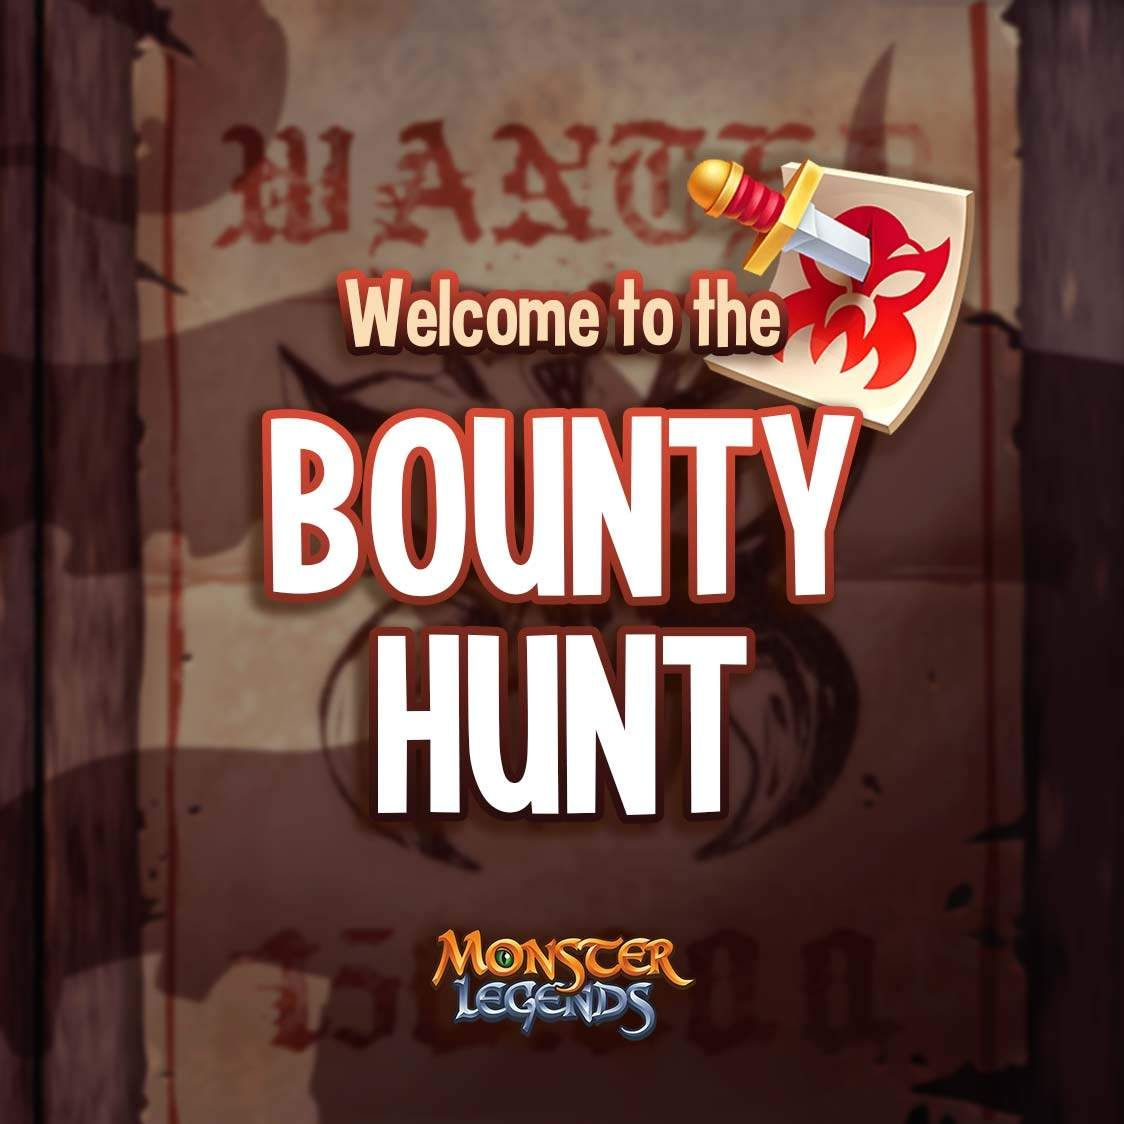 0_1616680041185_Welcome-to-the-Bounty-Hunt.jpg